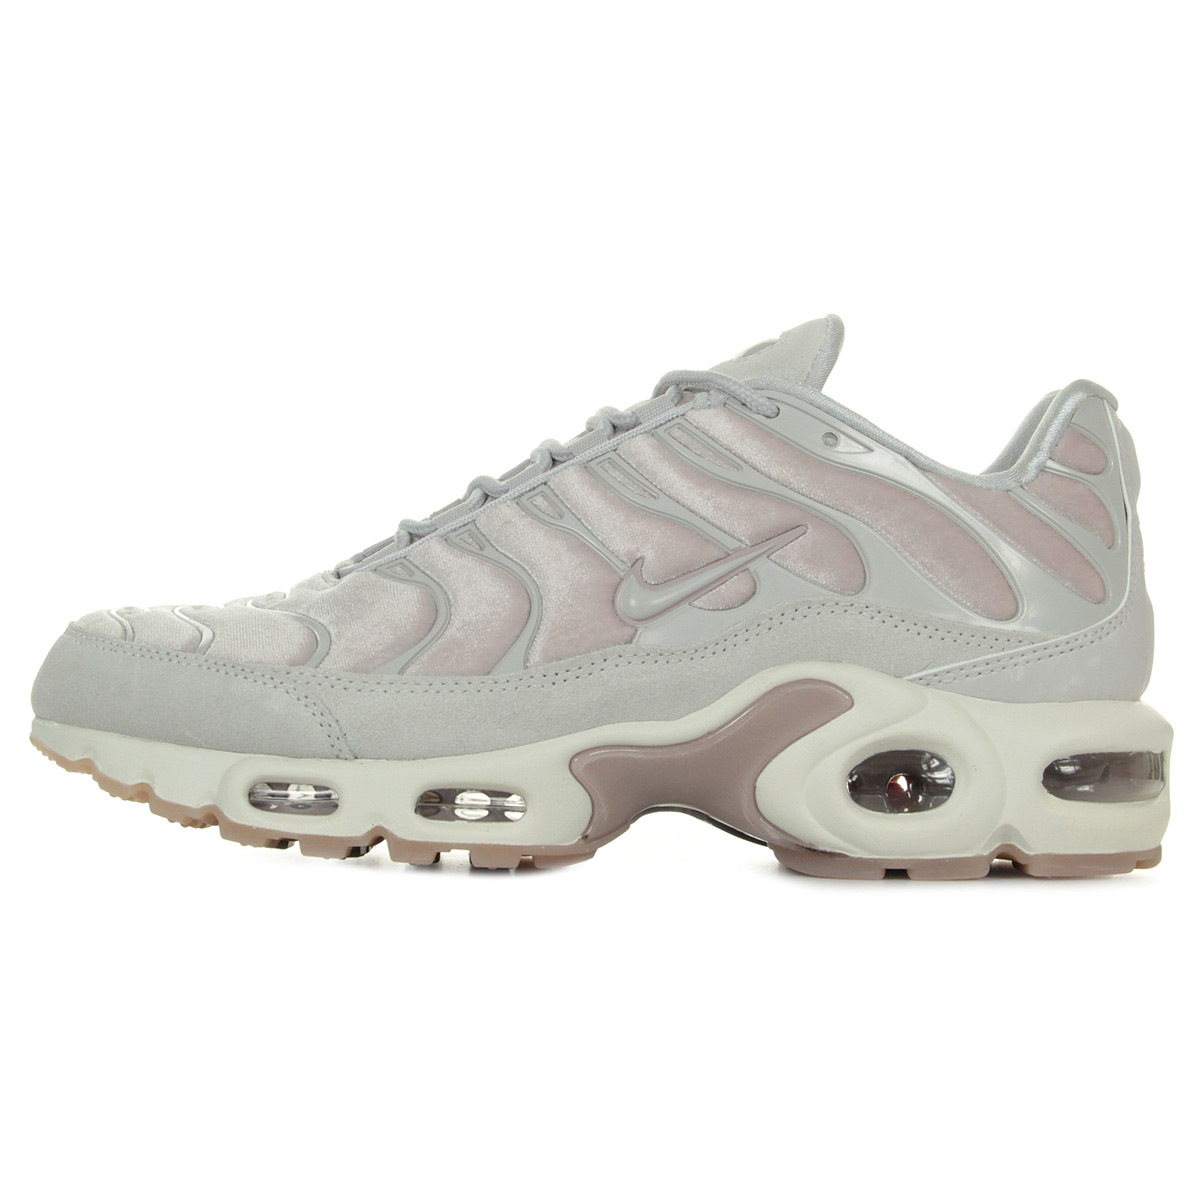 Nsair Femme Max Plus Ah6788600Baskets Mode Lux Wm Nike tCshdrQ